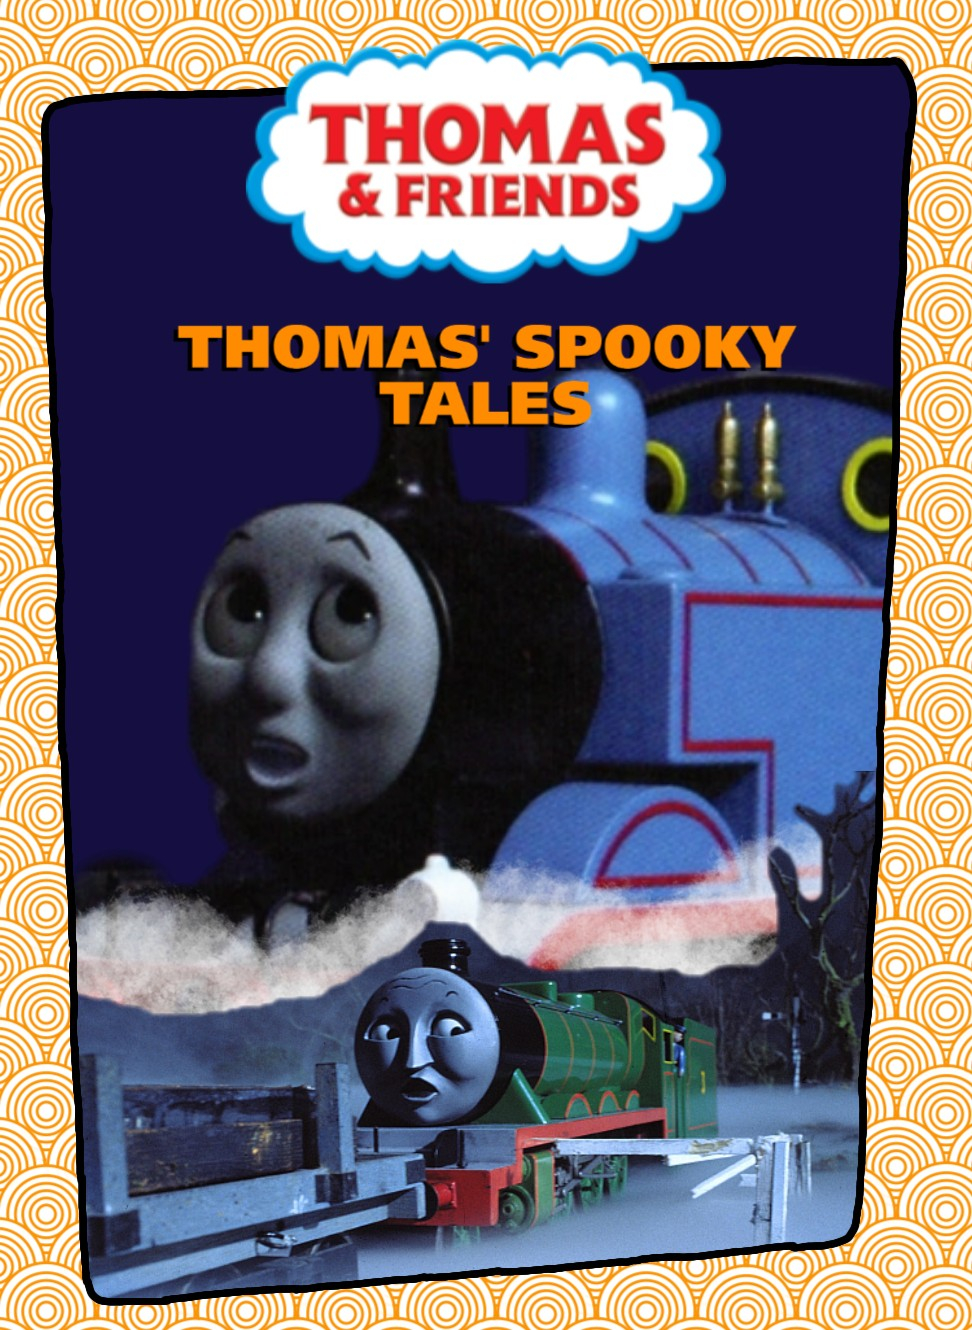 Thomas And Friends Thomas Halloween Adventures Dvd 2020 Thomas' Spooky Tales DVD by TestingTeen on DeviantArt